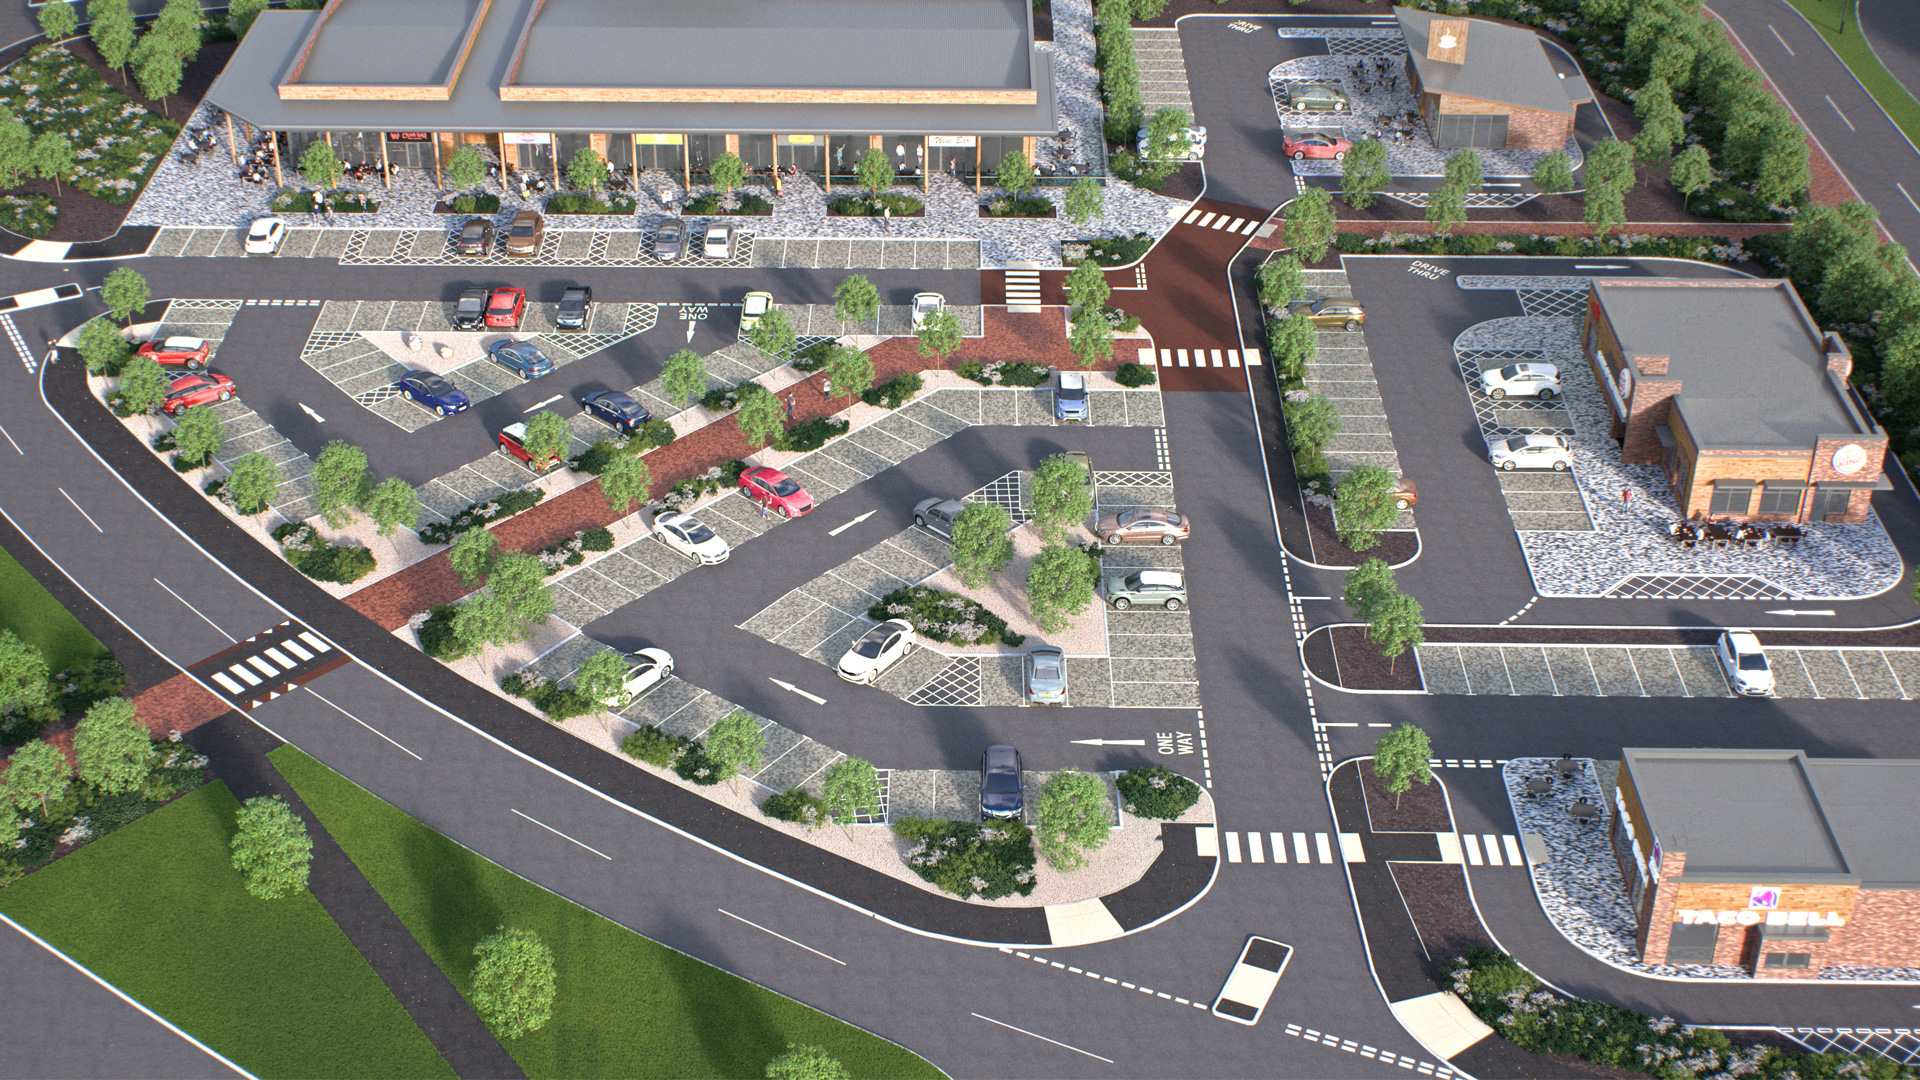 DCS Taco Bell, Burger King and Dunkin Donuts at Herten Triangle Doncaster Lakeside 3D